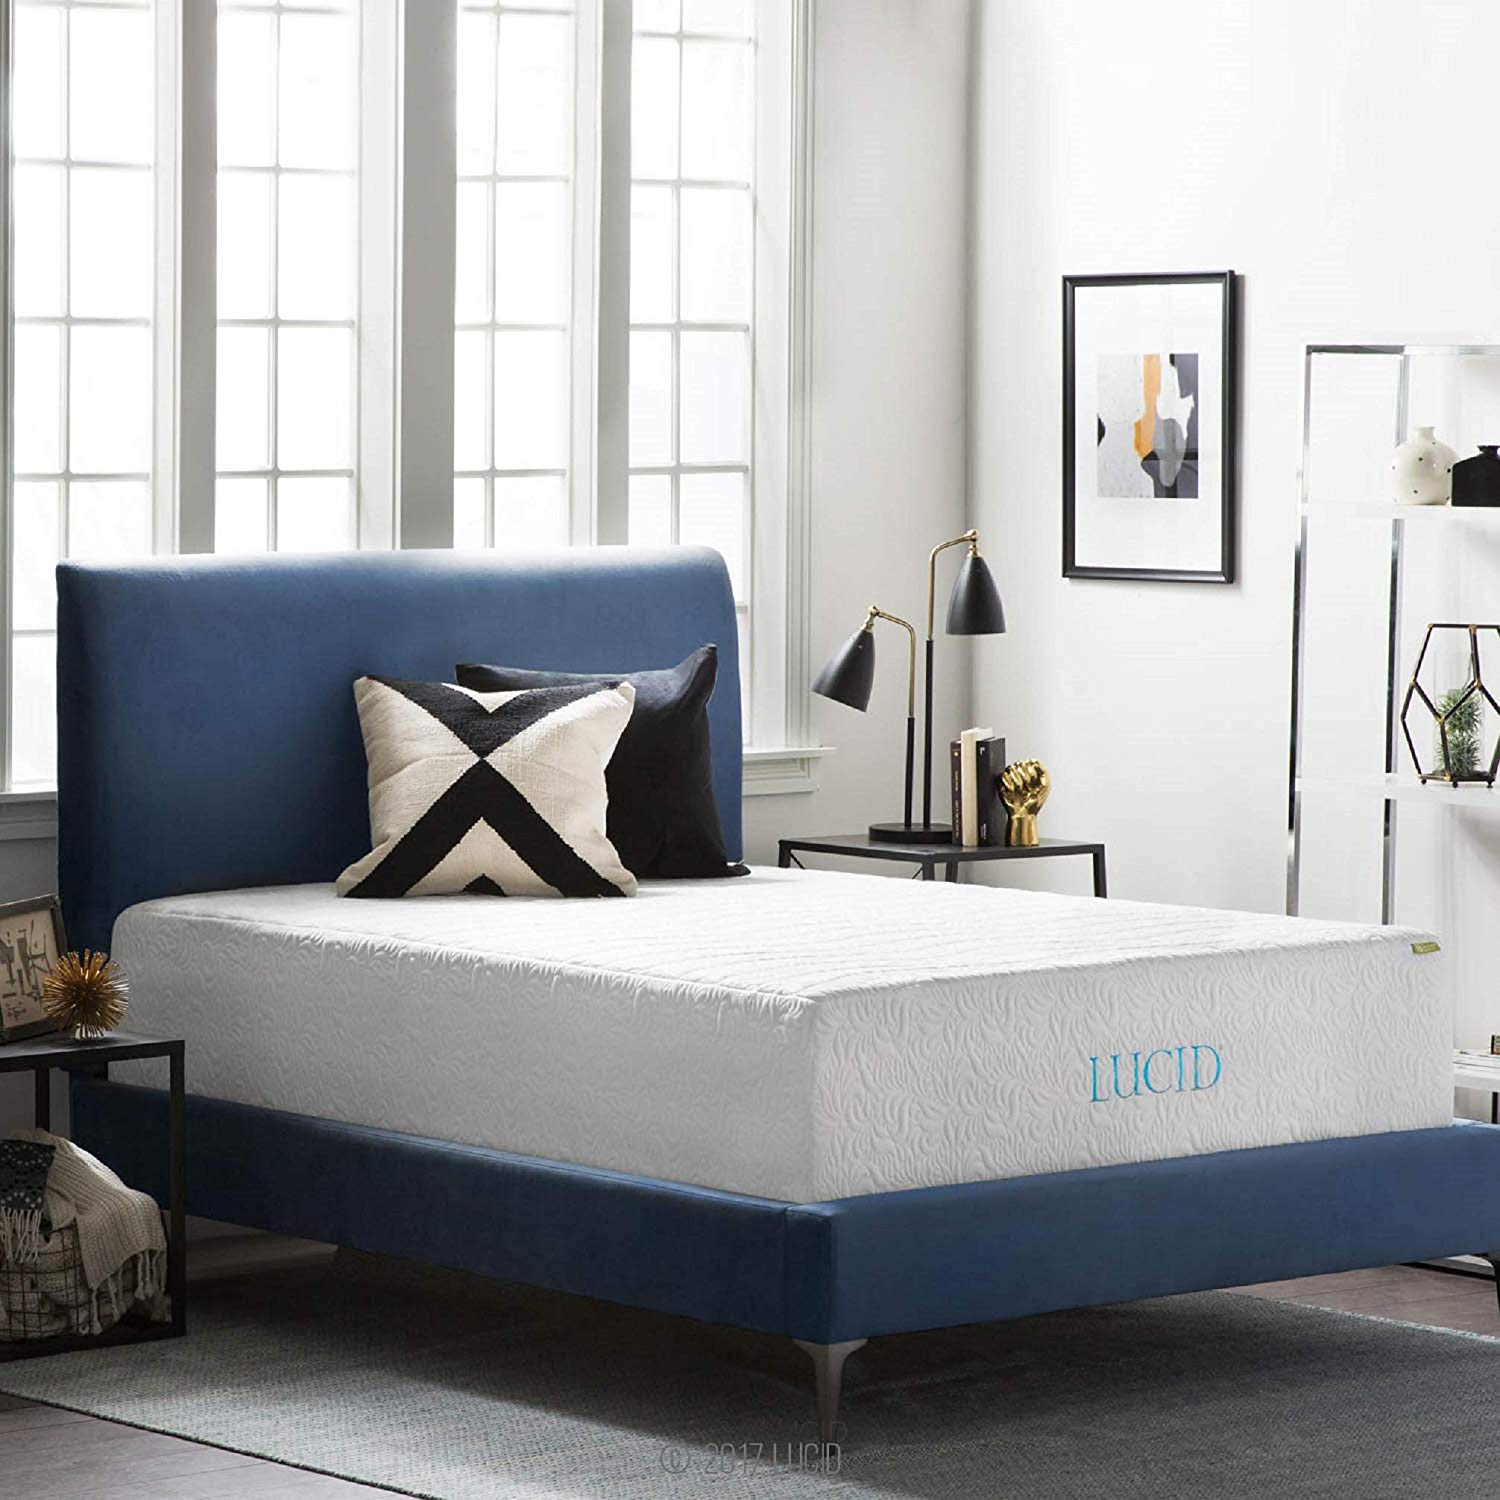 LUCID Bamboo Mattress Review by www.snoremagazine.com